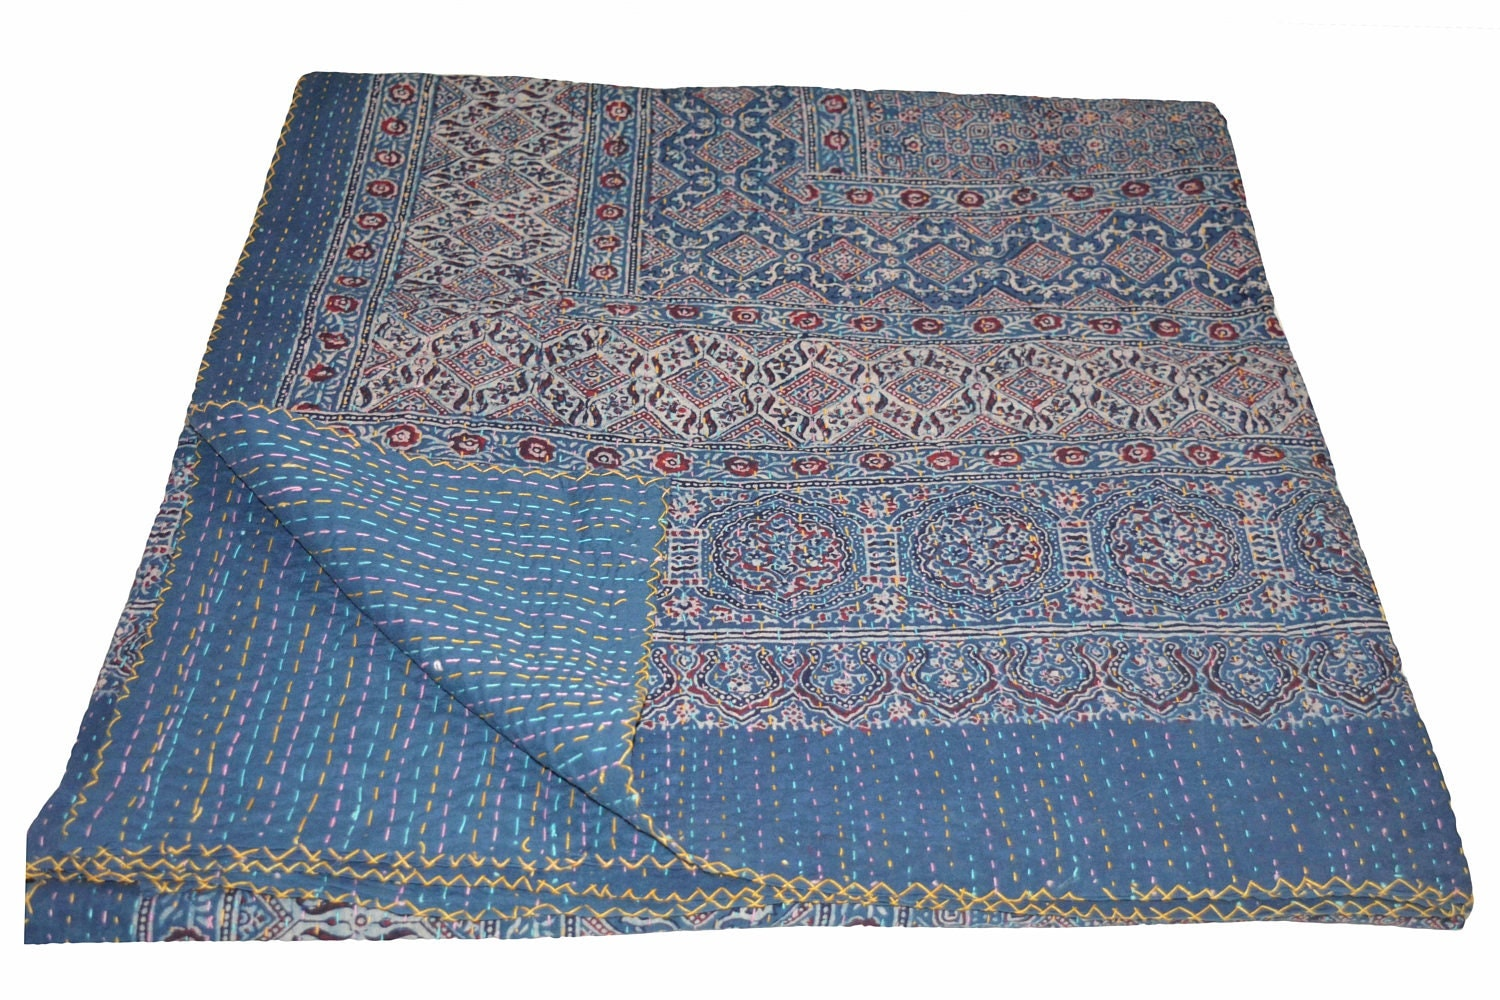 Baby bed quilt size - Vintage Indian Kantha Quilt Handmade Ajrakh Hand Block Print 100 Cotton Bed Cover Bedspread Blanket Queen Size Twin Size King Size